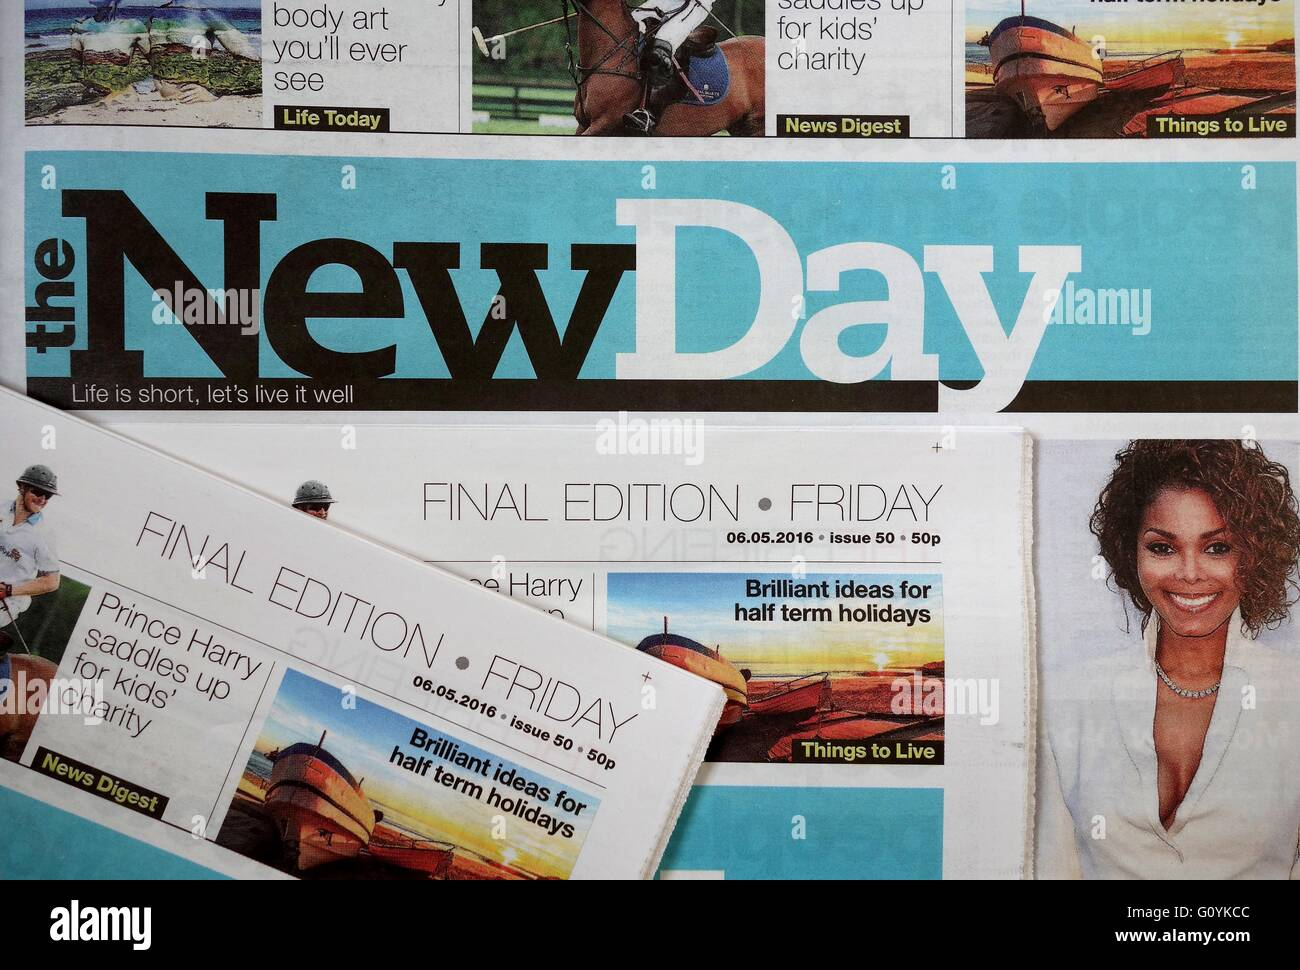 Final Edition of 'The New Day' newspaper - Stock Image